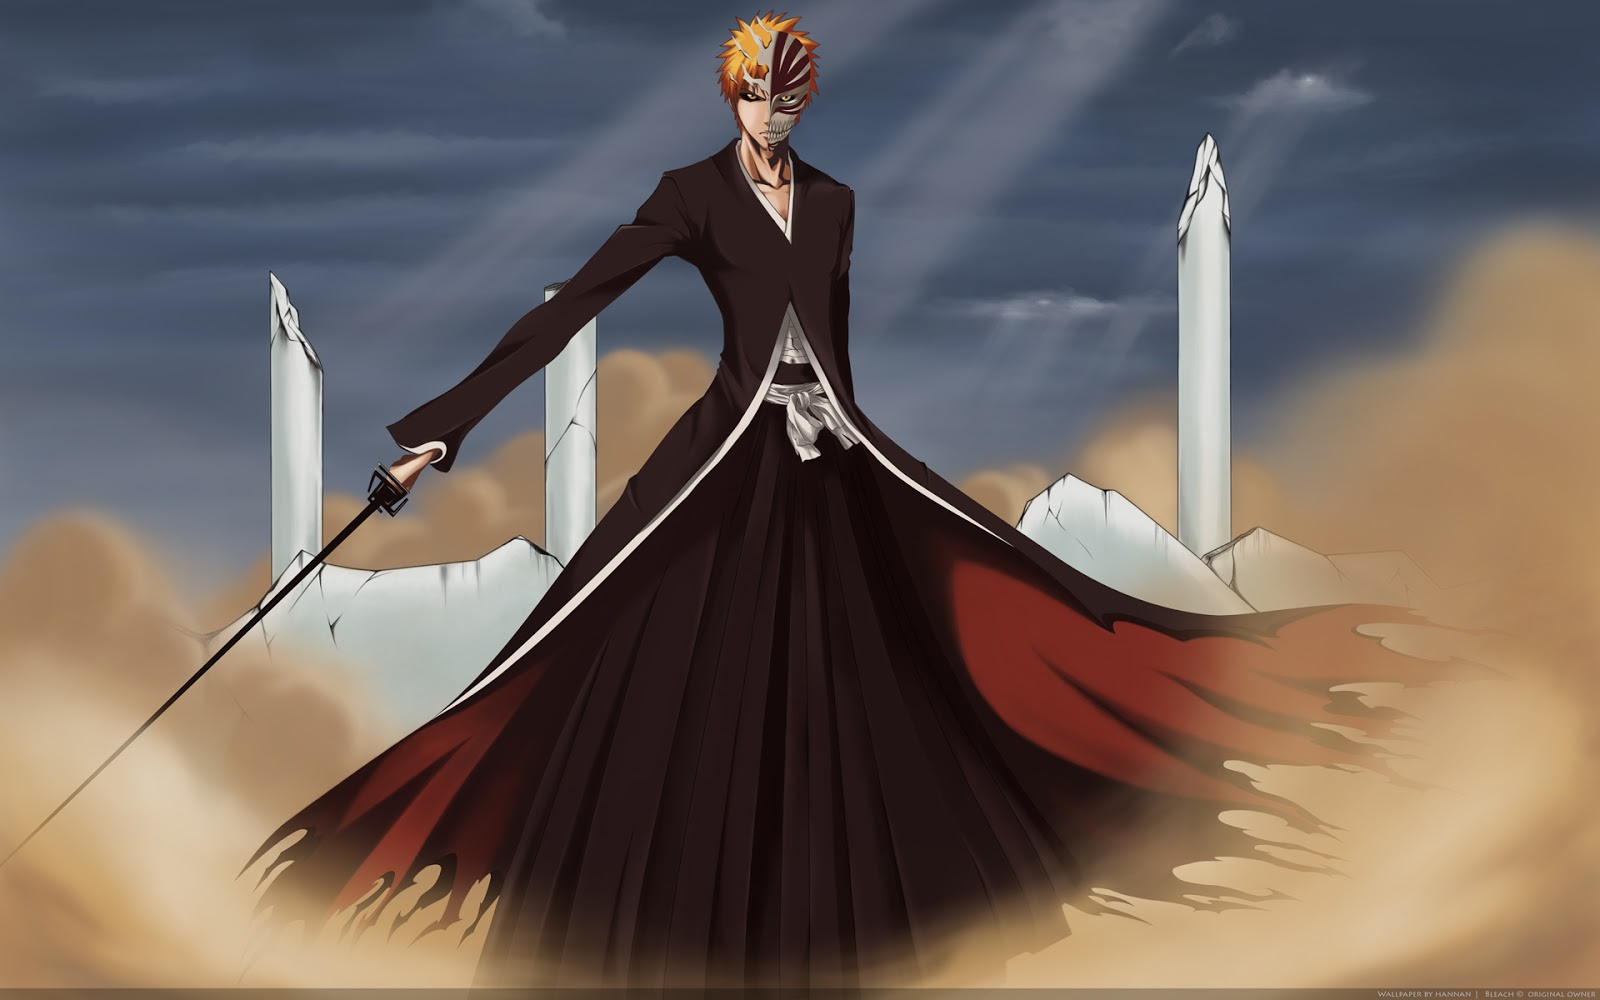 http://2.bp.blogspot.com/-4r-jAiLp5PU/UQEpr-GgoqI/AAAAAAAAAHg/GtMfDnYl8jo/s1600/307-bleach-ichigo-hollow-wallpaper-1920x1200-1920x1200-customity.jpg